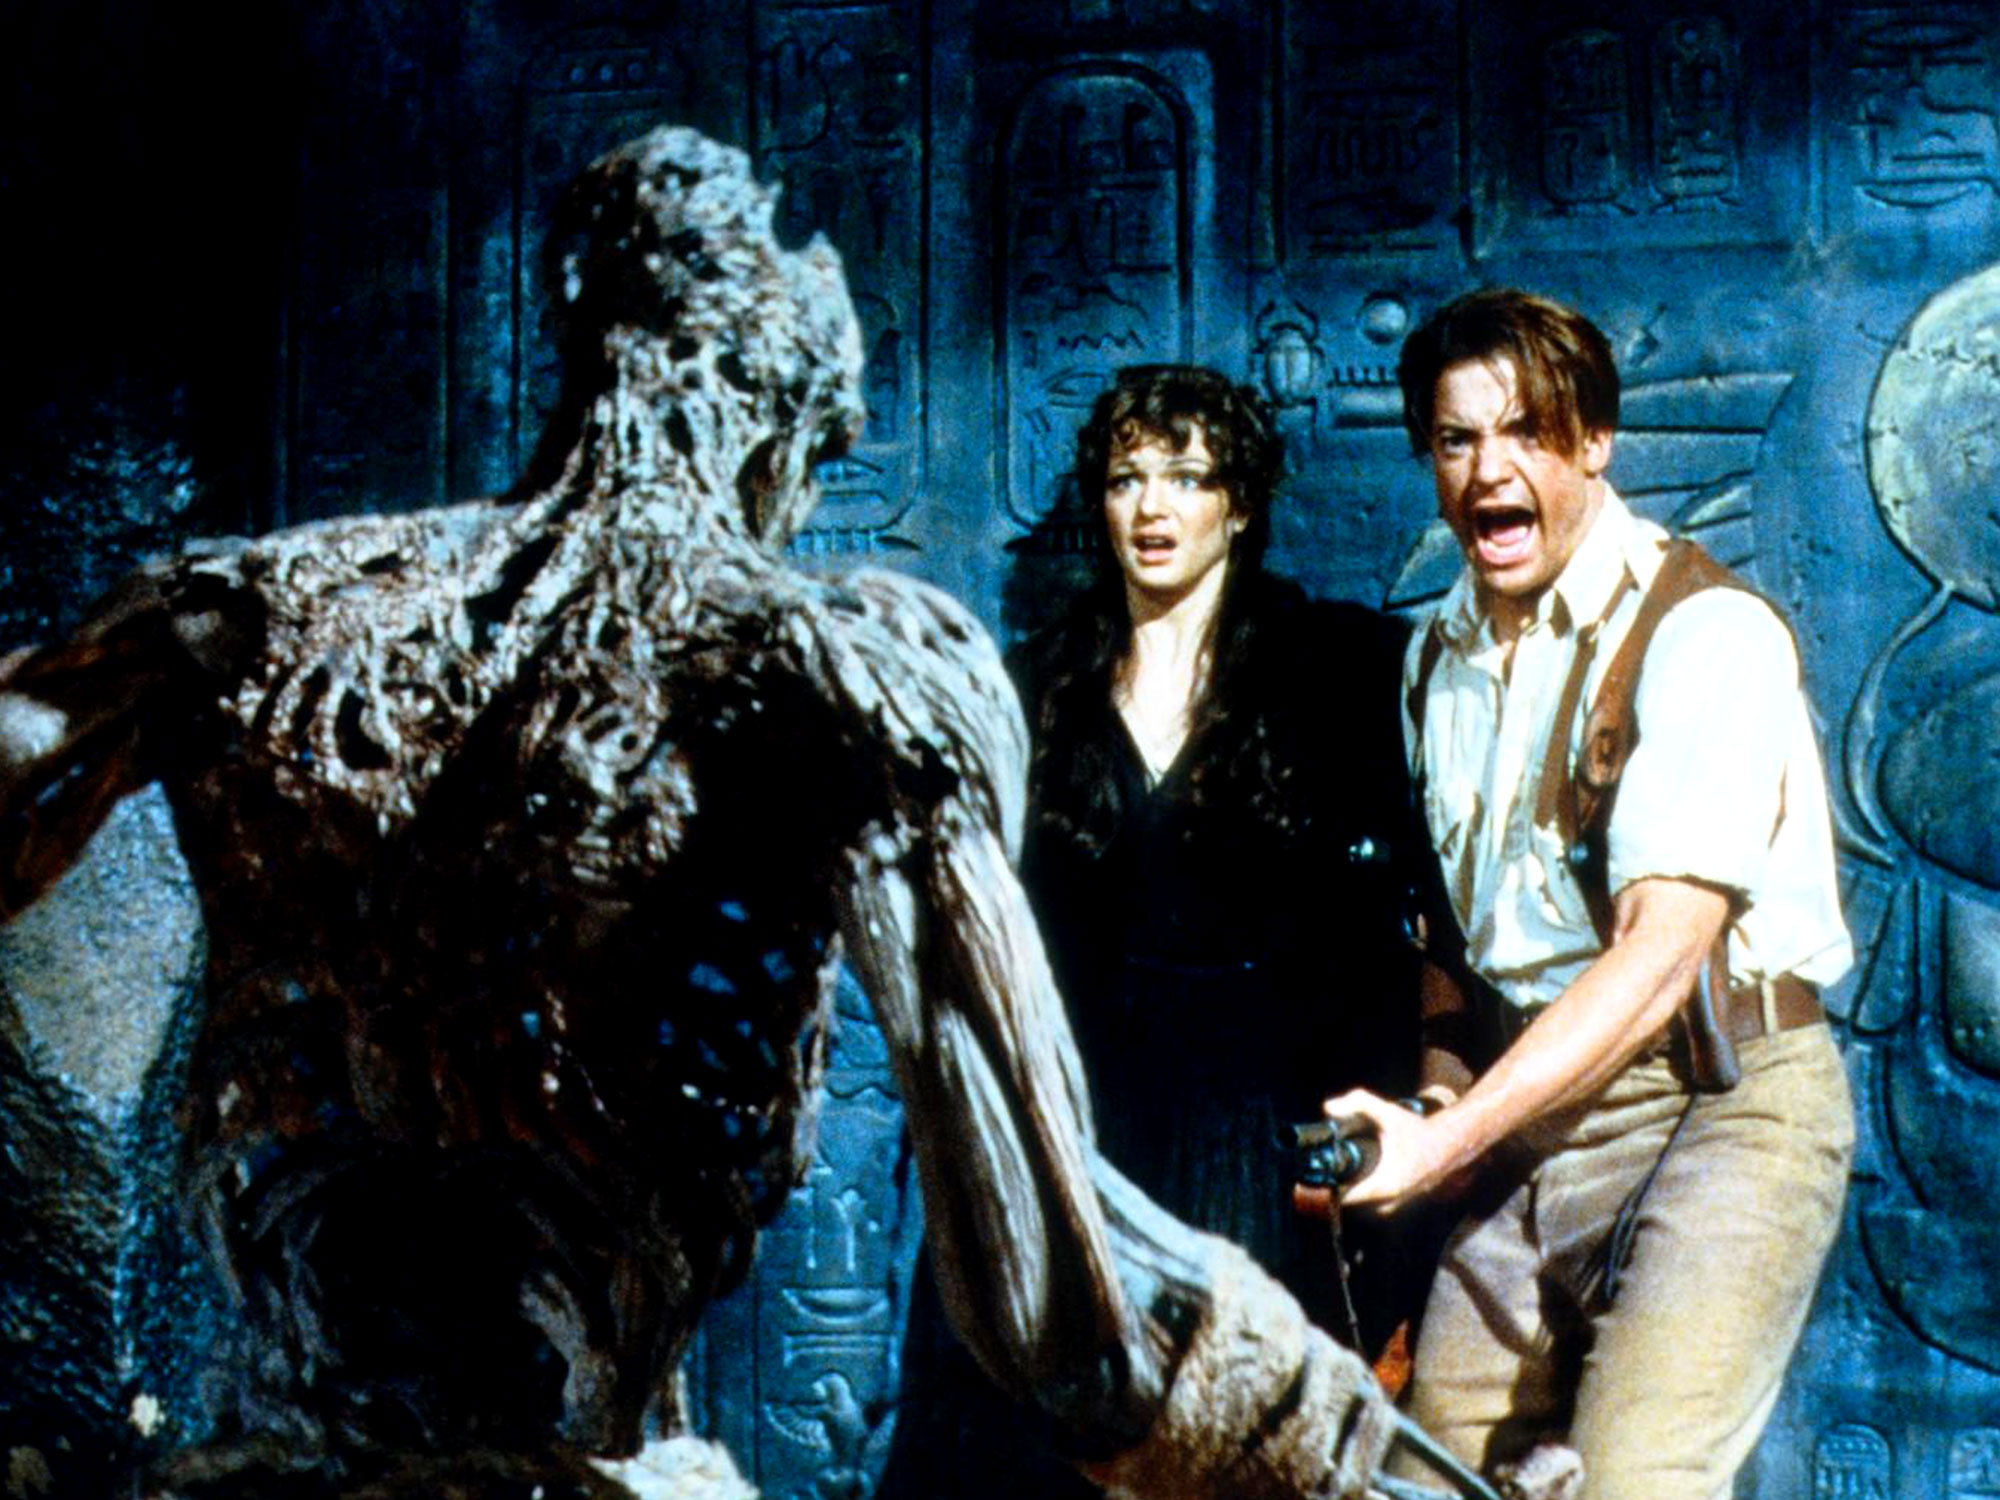 How The Mummy set the tone for the modern horror blockbuster